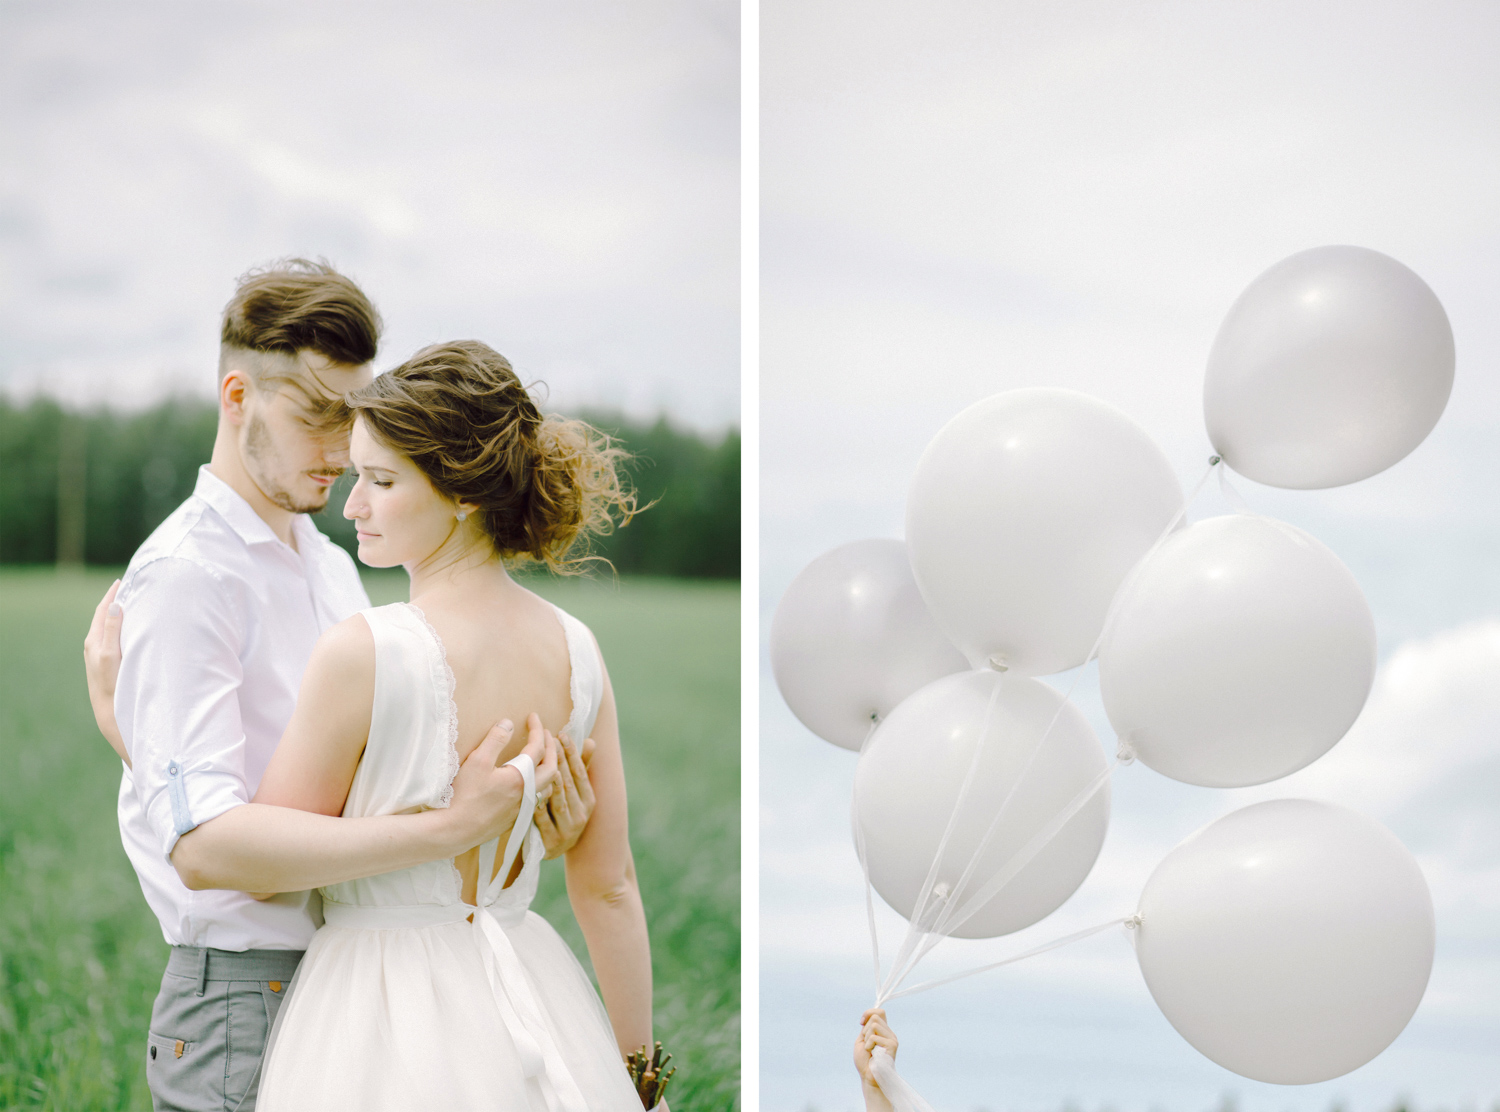 polinastudio.ru_wedding_ar-6